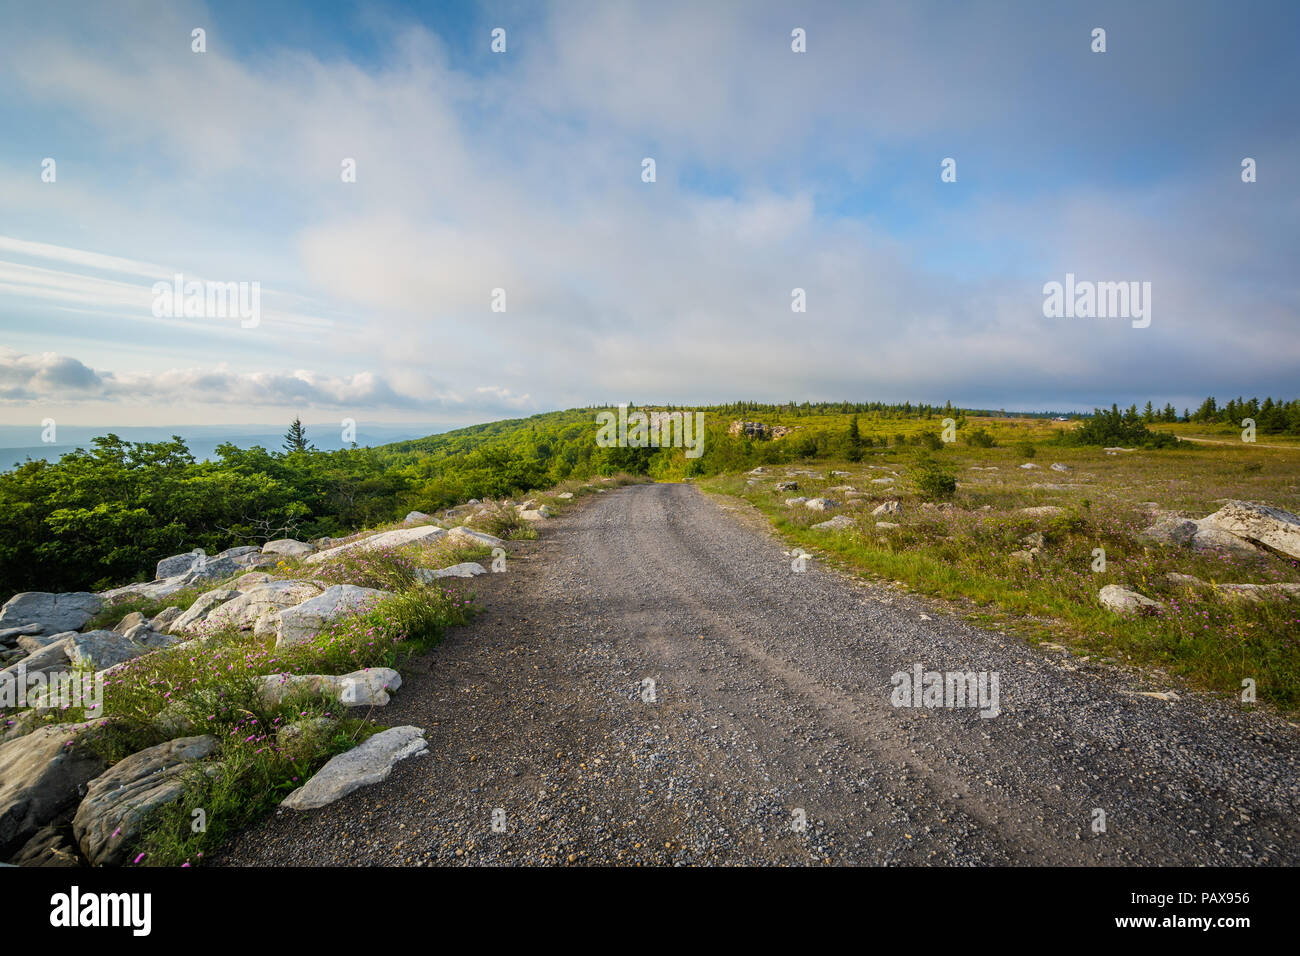 Dirt road in Dolly Sods Wilderness, Monongahela National Forest, West Virginia. - Stock Image